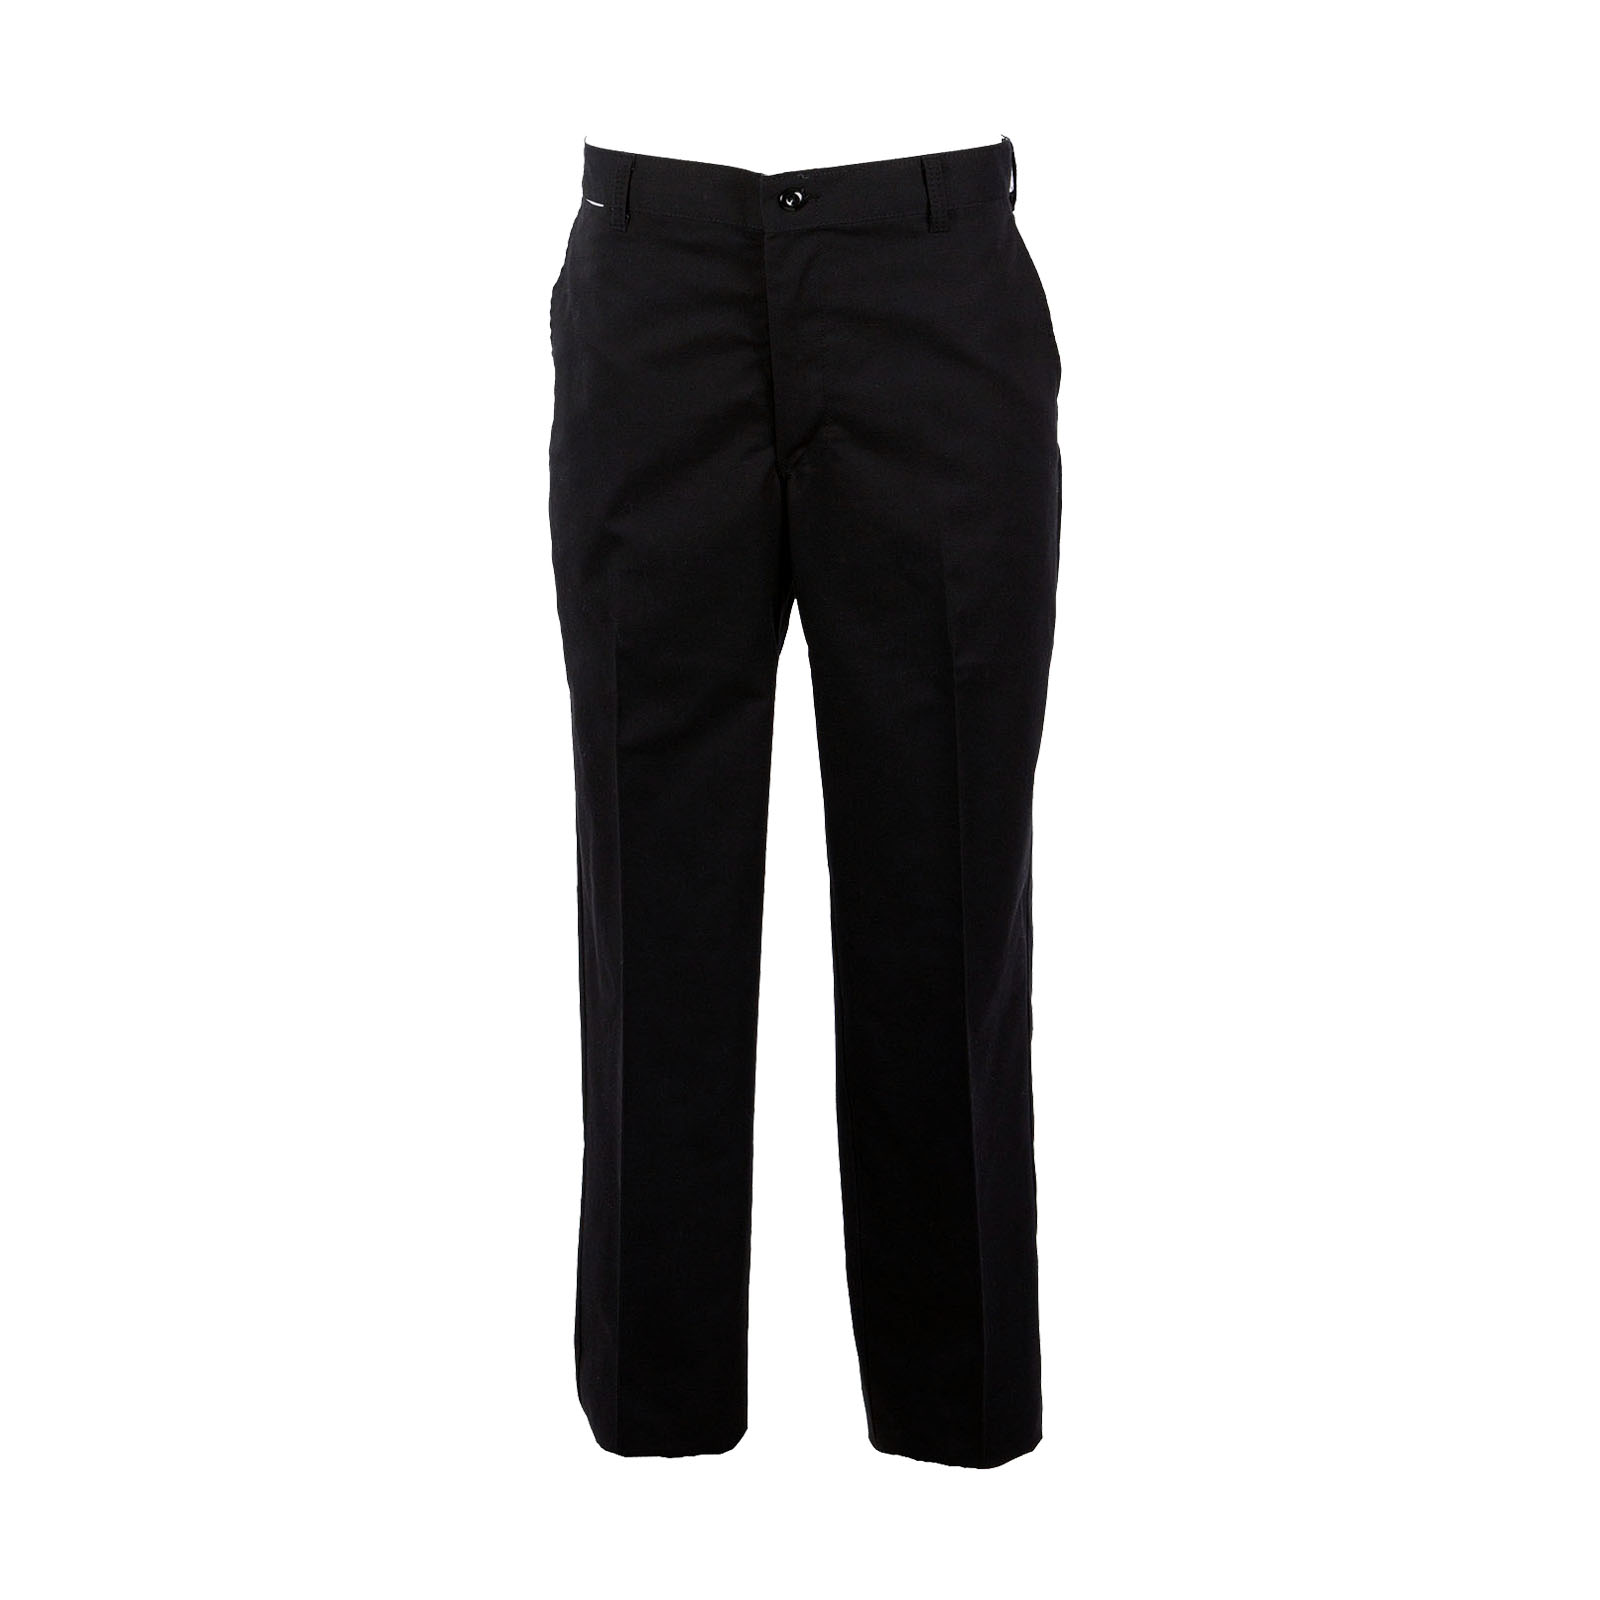 P100BK - Black Chef Pant, Zipper, 65/35 Twill